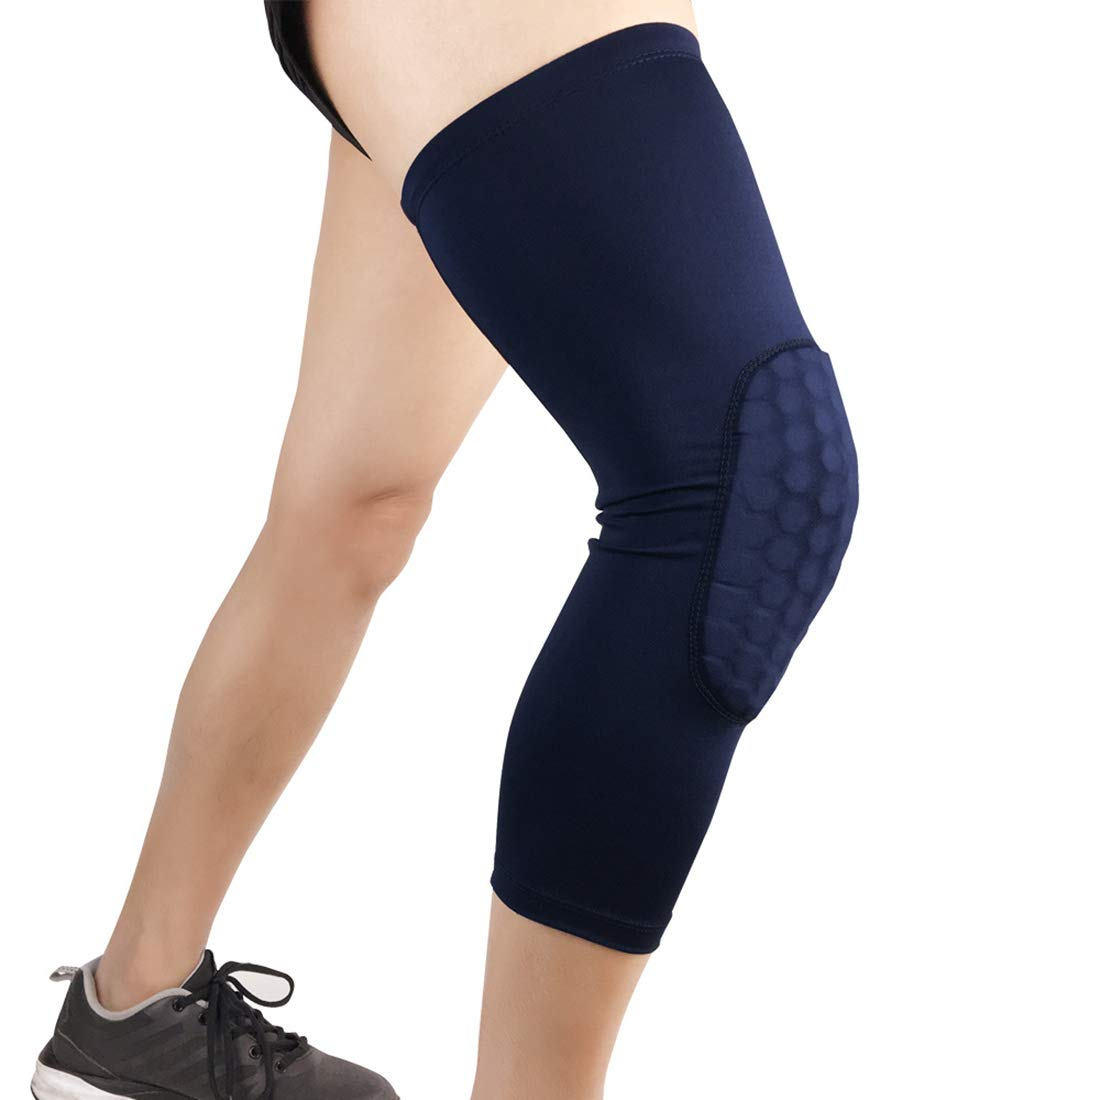 blueee Large Knee Support Pads Knee Compression Sleeve Support Relief Thick Sponge Collision Avoidance Kneepad NonSlip Skating Dance Predector (1pair)